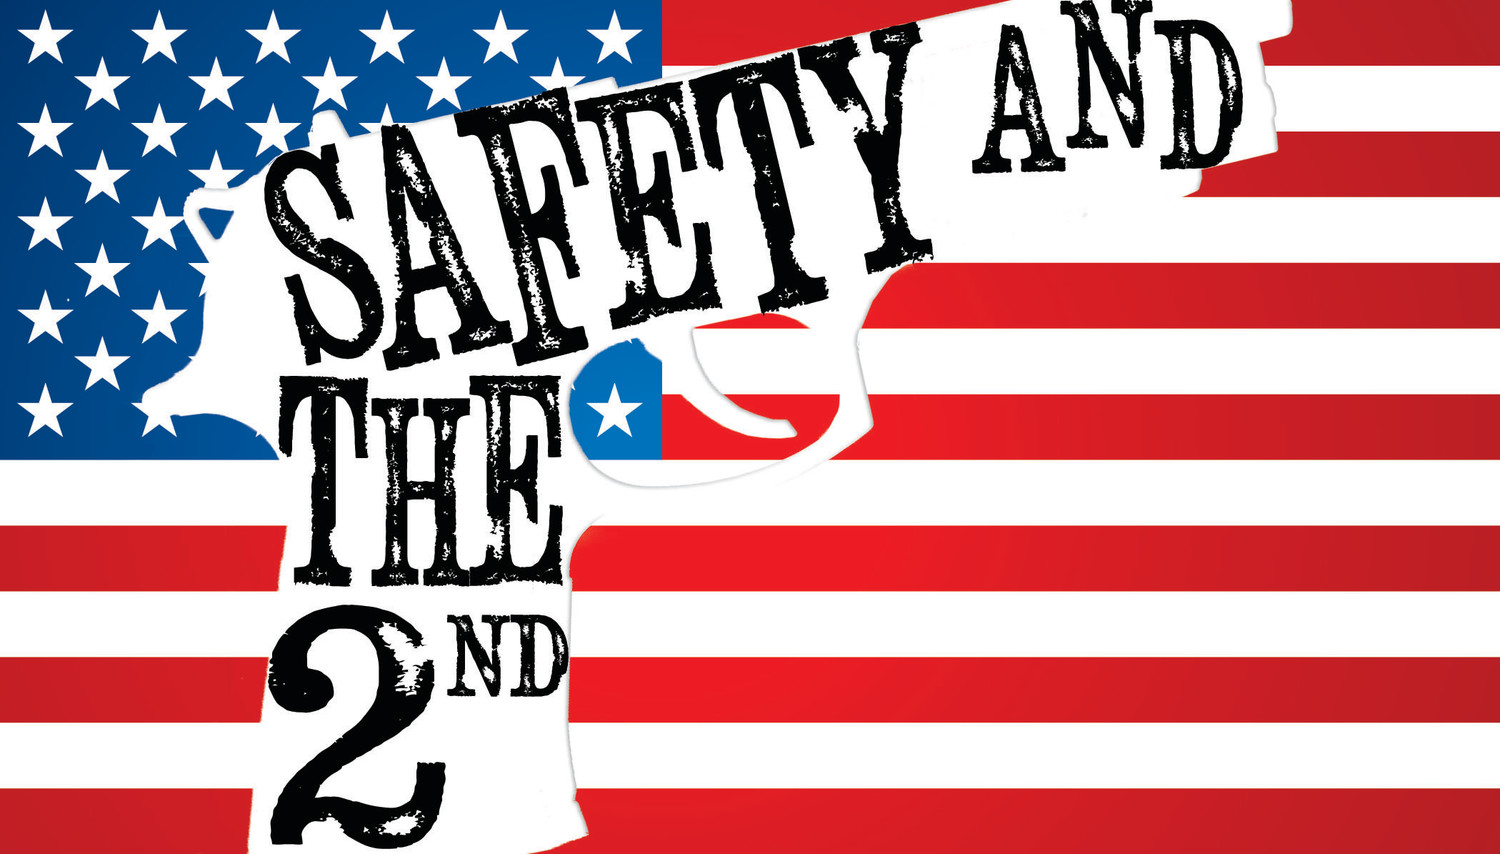 20180423-181912-  Safety and the 2nd 2_CMYK.jpg